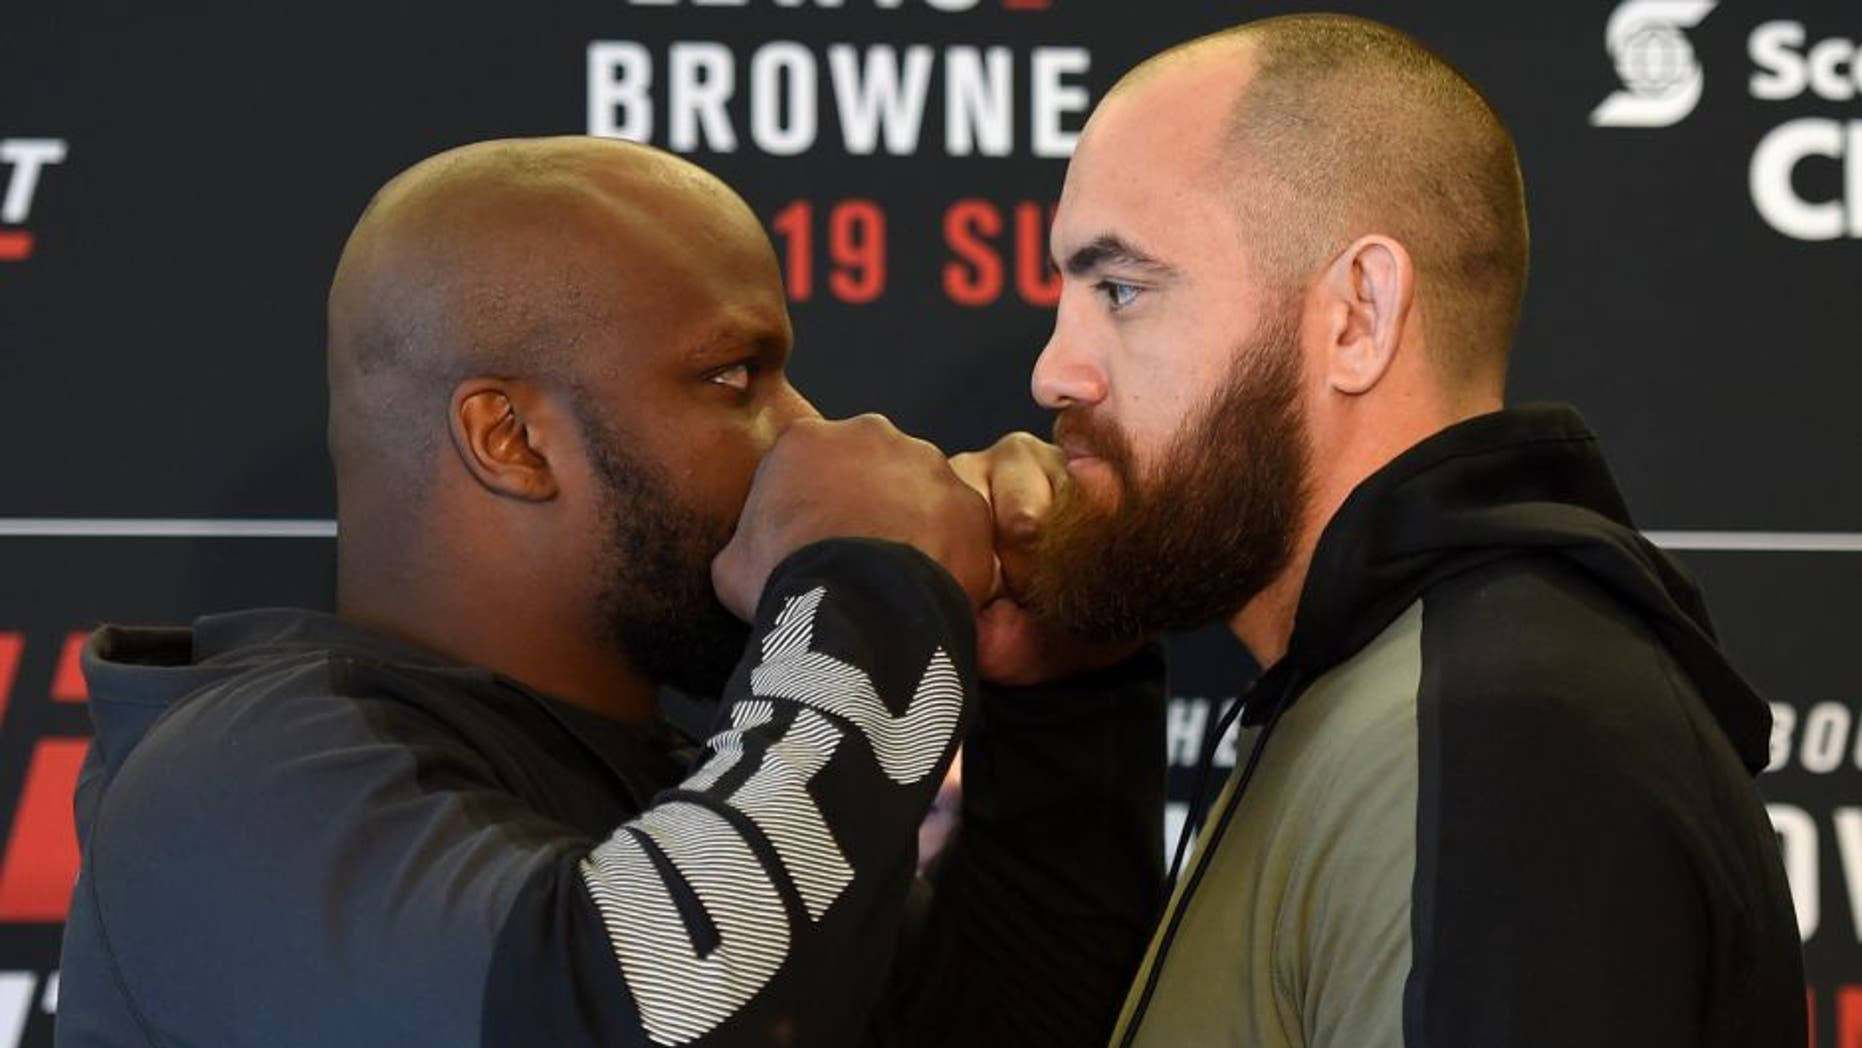 HALIFAX, NS - FEBRUARY 17: (L-R) Opponents Derrick Lewis and Travis Browne face off during the UFC Ultimate Media Day at the Halifax Marriott Harbourfront on February 17, 2017 in Halifax, Nova Scotia, Canada. (Photo by Josh Hedges/Zuffa LLC/Zuffa LLC via Getty Images)